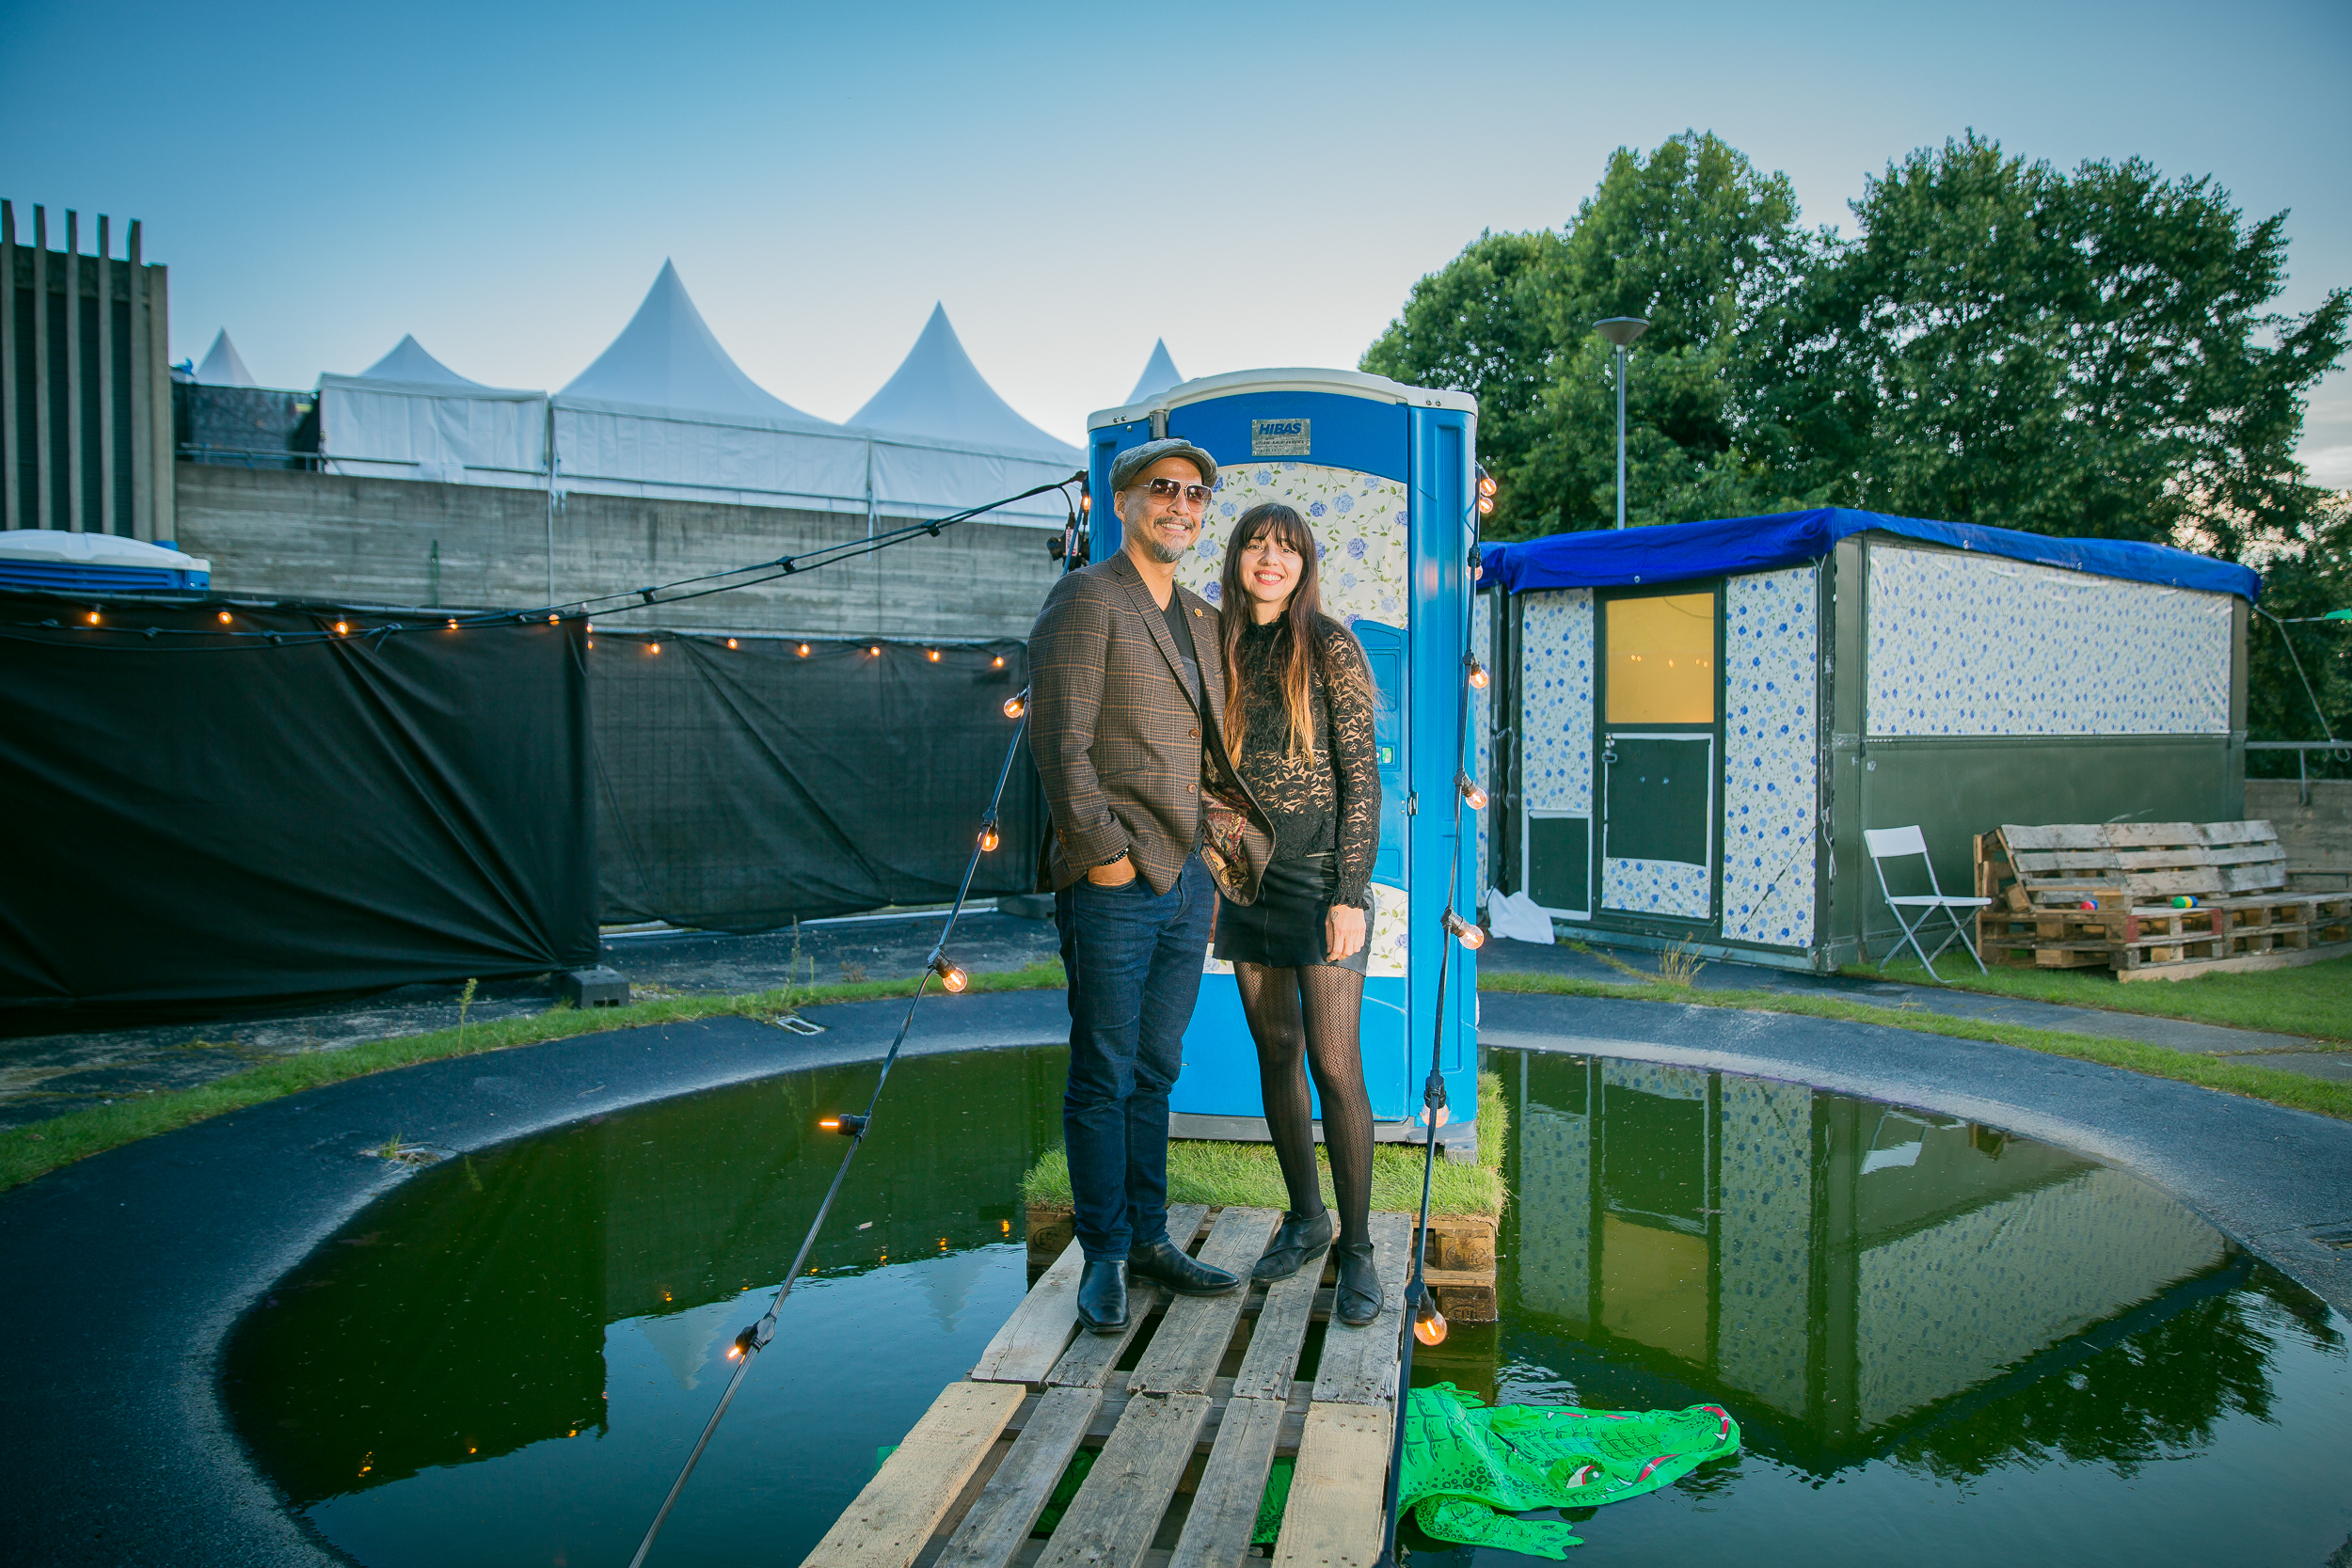 Joey Santiago and Paz Lenchantin of Pixies backstage at Øyafestivalen 2017, Oslo.